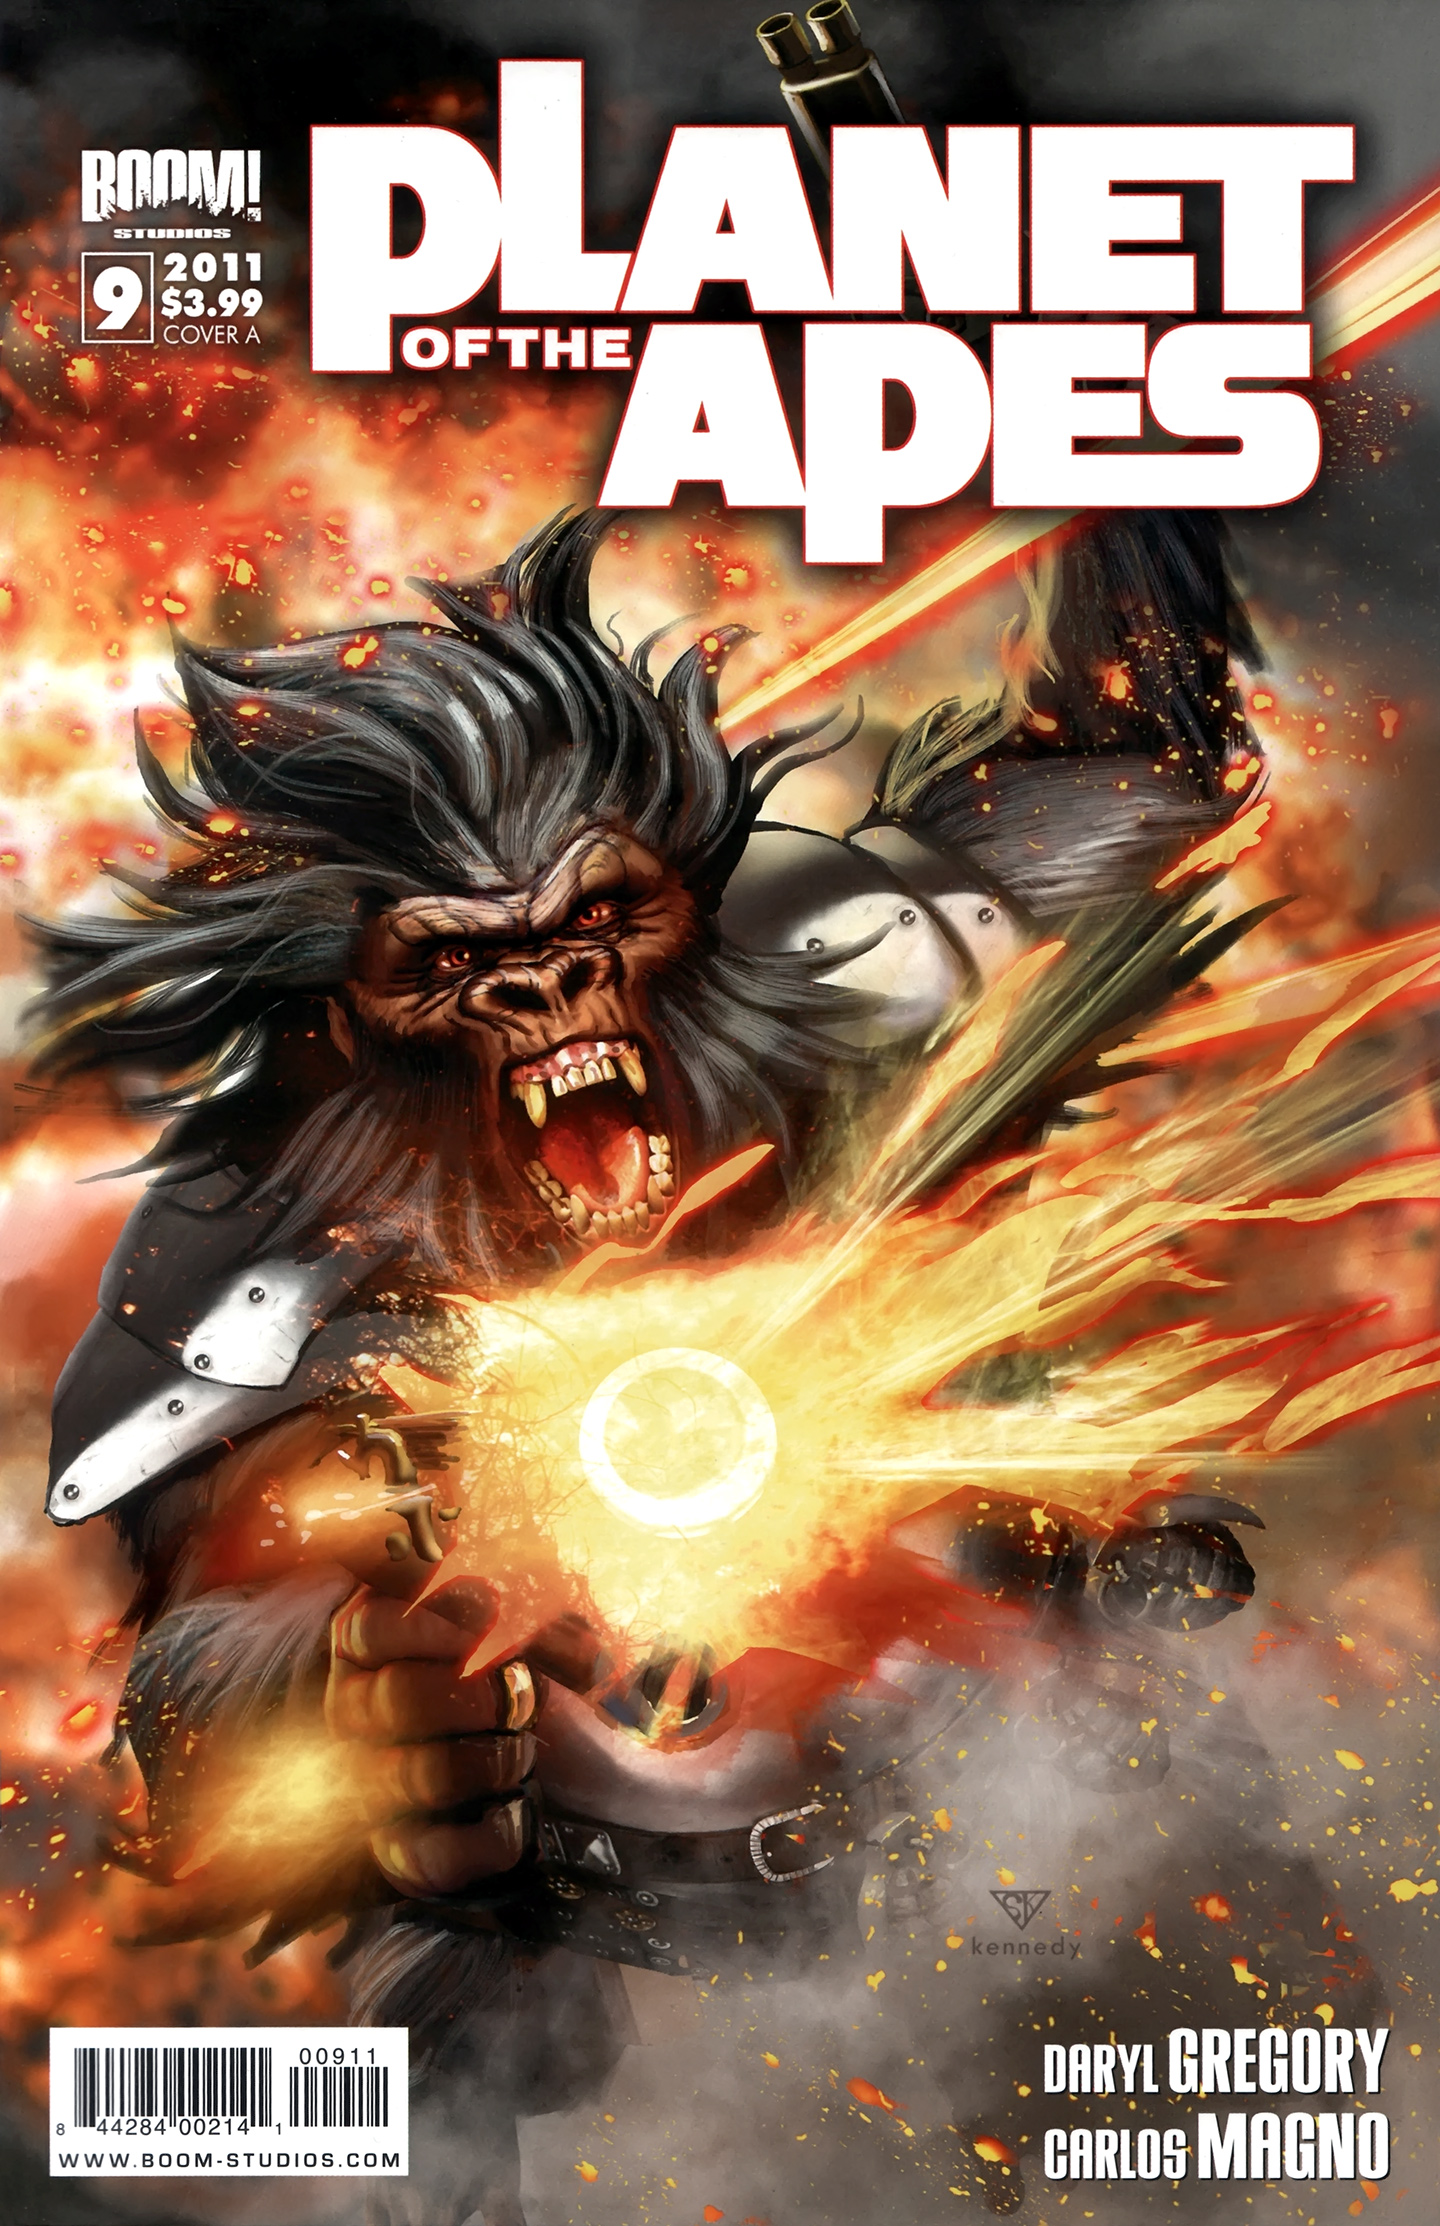 Planet of the Apes (BOOM! Studios) 9